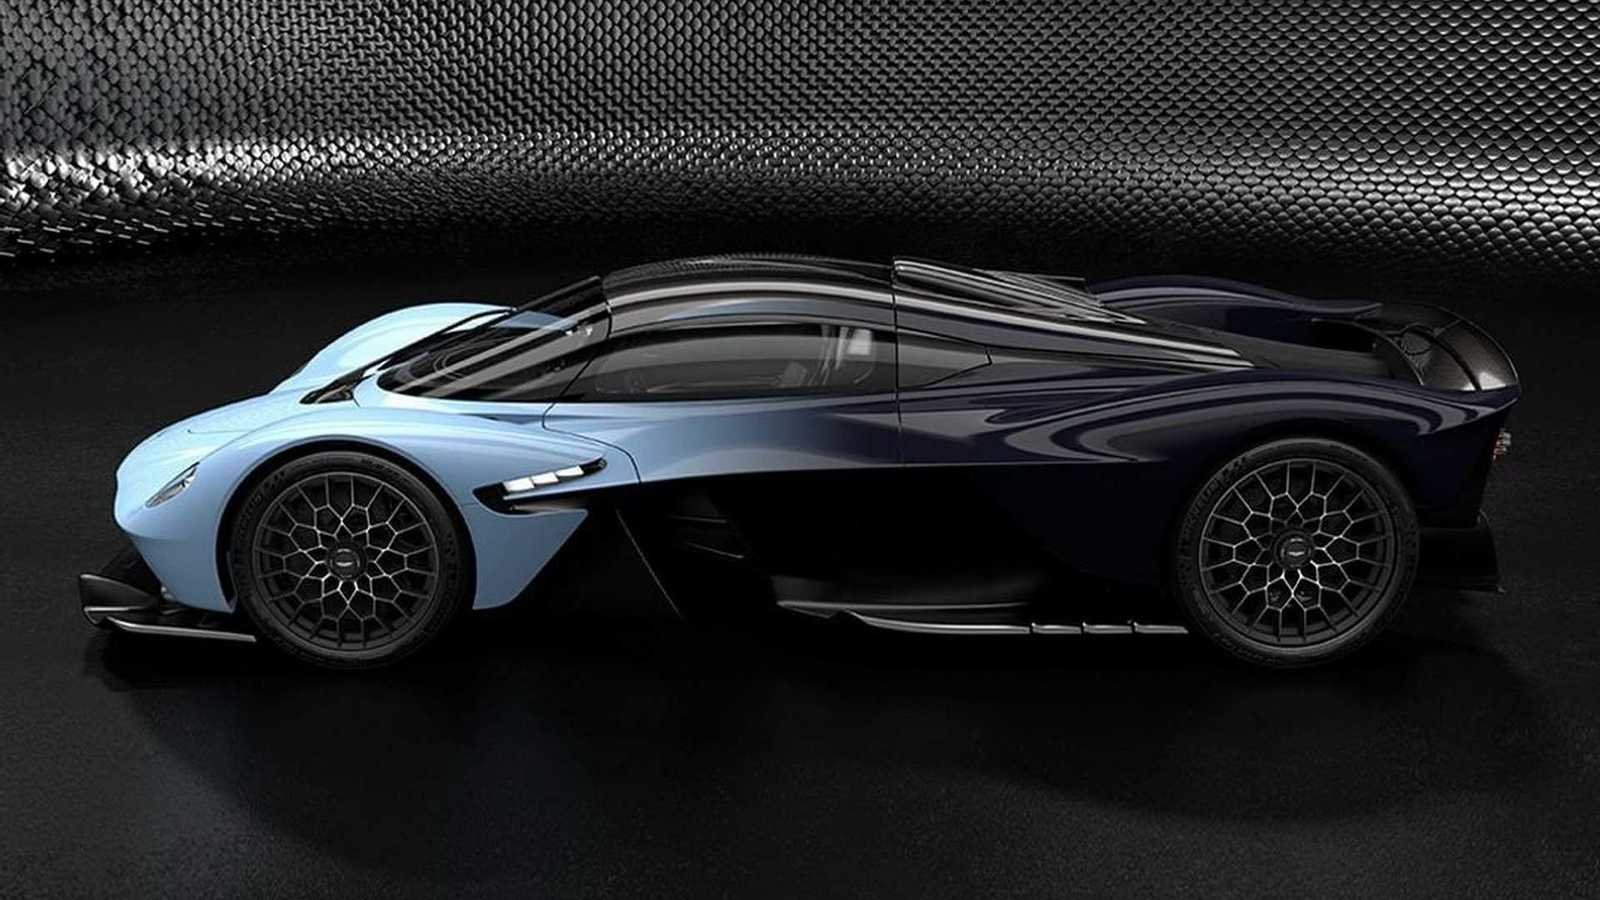 Aston Martin Valkyrie Latest News Reviews Specifications Prices Photos And Videos Top Speed